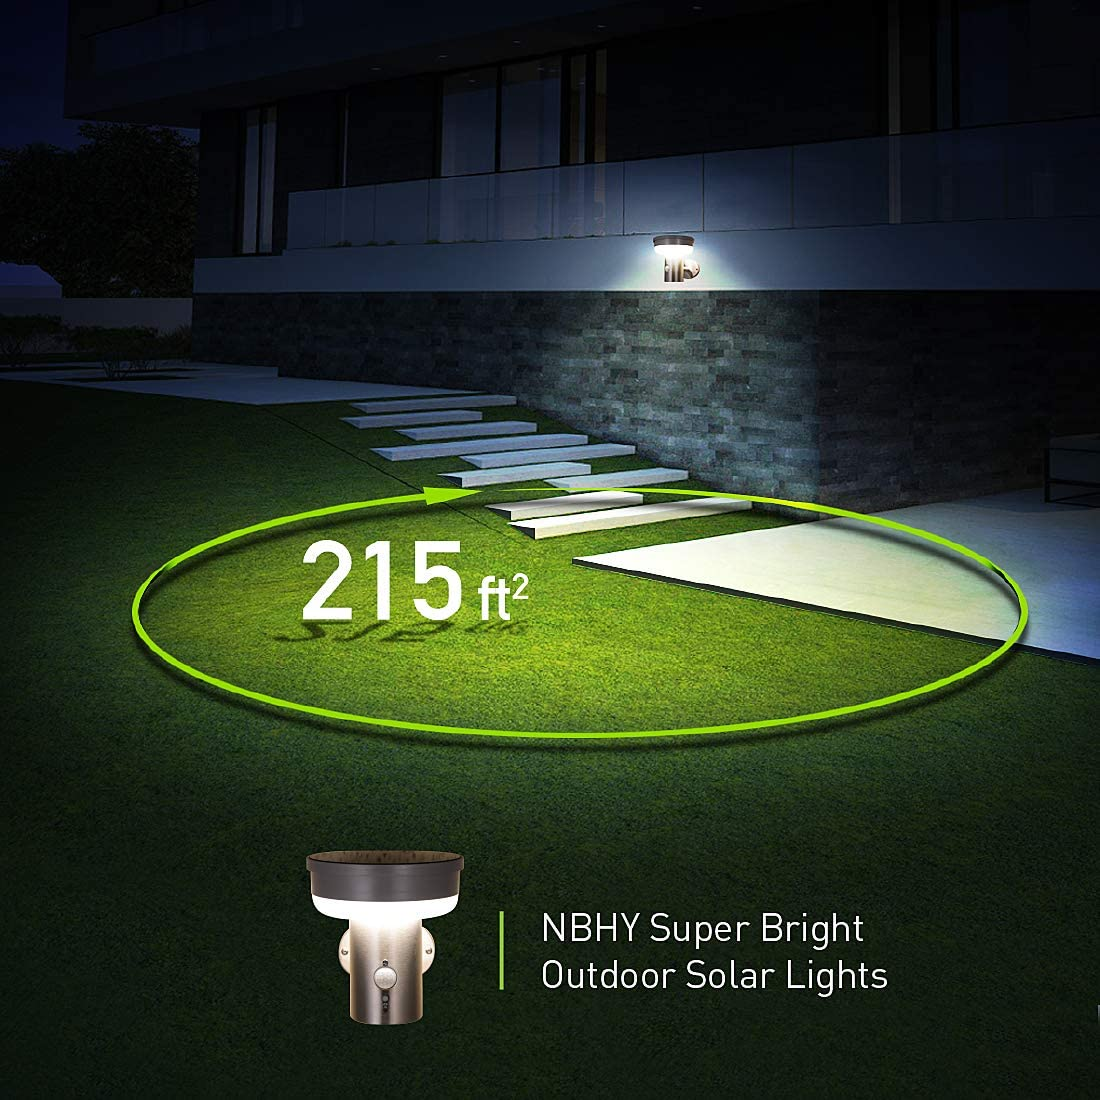 Solar Wall Light with Motion Sensor and Dust to Dawn Sensor LED Porch Lighting Fixture Black Stainless Steel Outdoor Sconce 4000K Natural White Multiple Lighting Modes for Diverse Needs